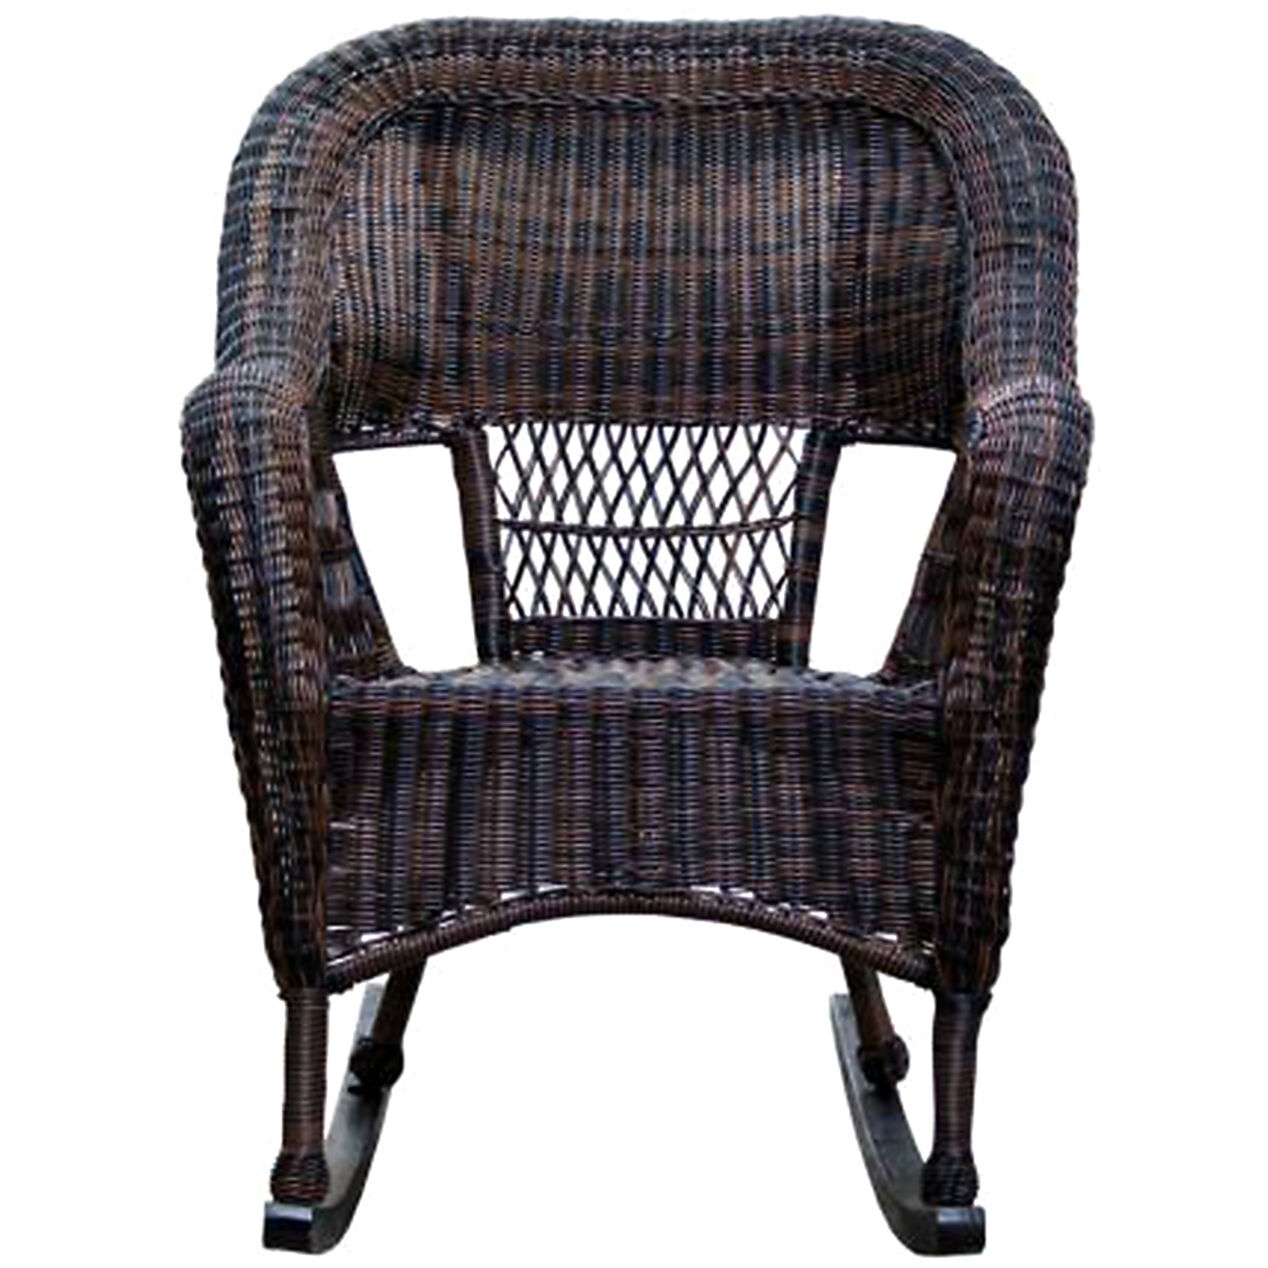 Dark Brown Wicker Outdoor Patio Rocking Chair - At Home